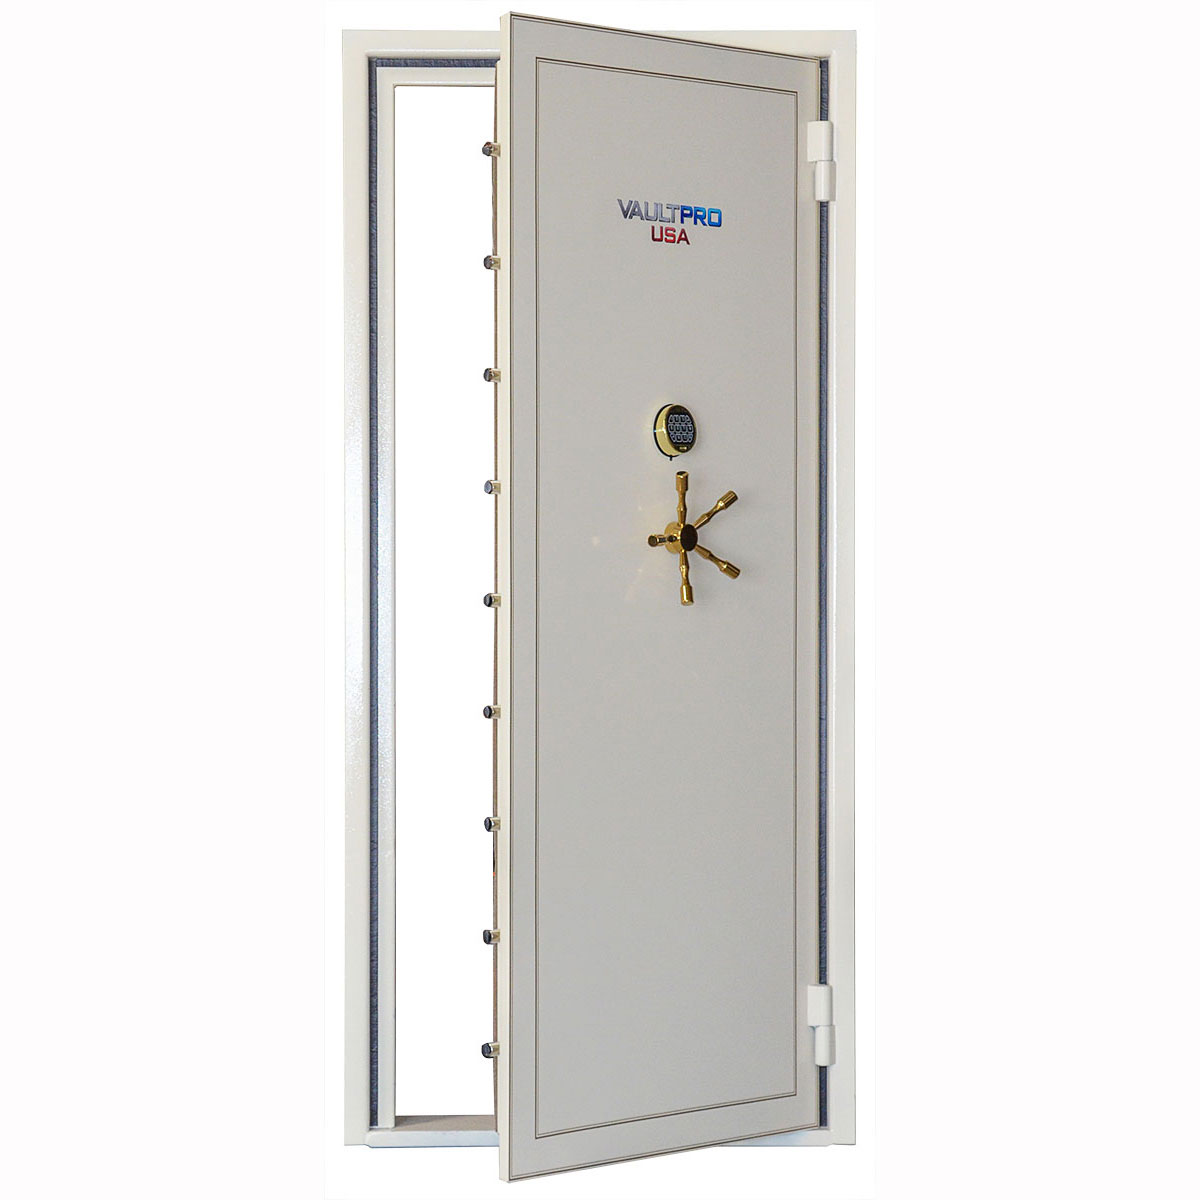 Vault pro executive series vault door vault pro executive for Door pros